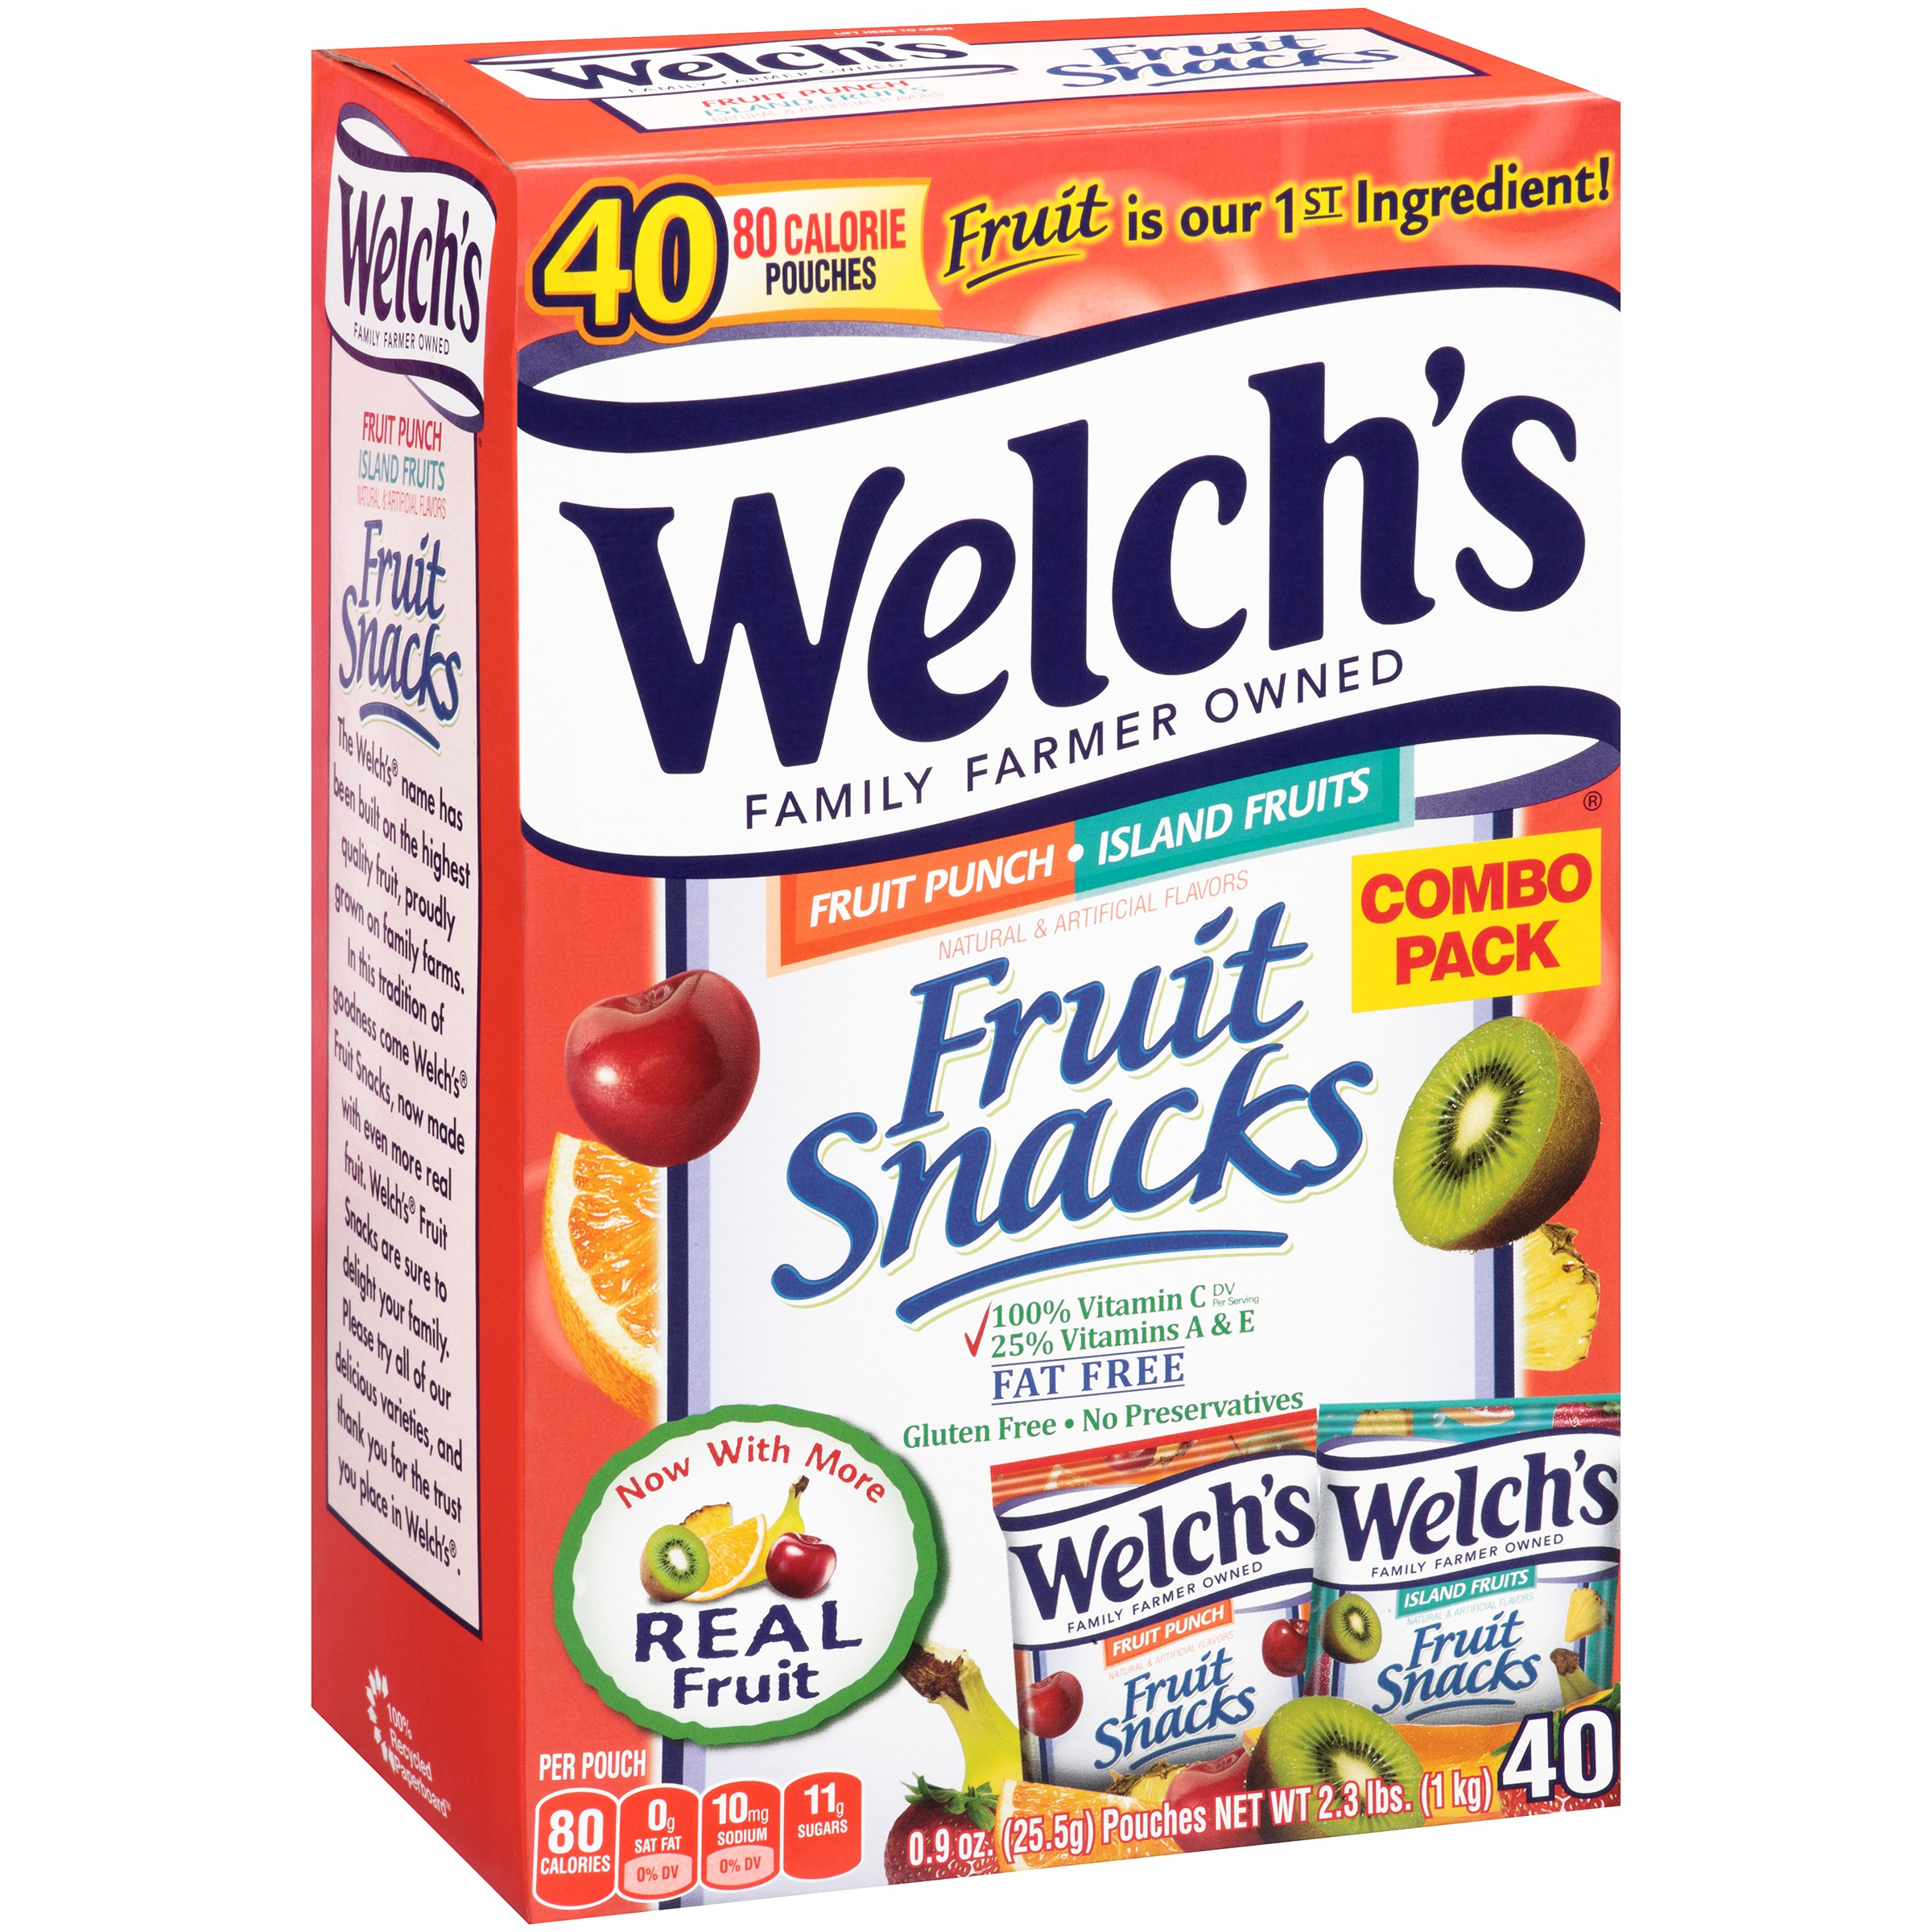 Welch's® Fruit Punch/Island Fruits Fruit Snacks 40-0.9 oz. Box